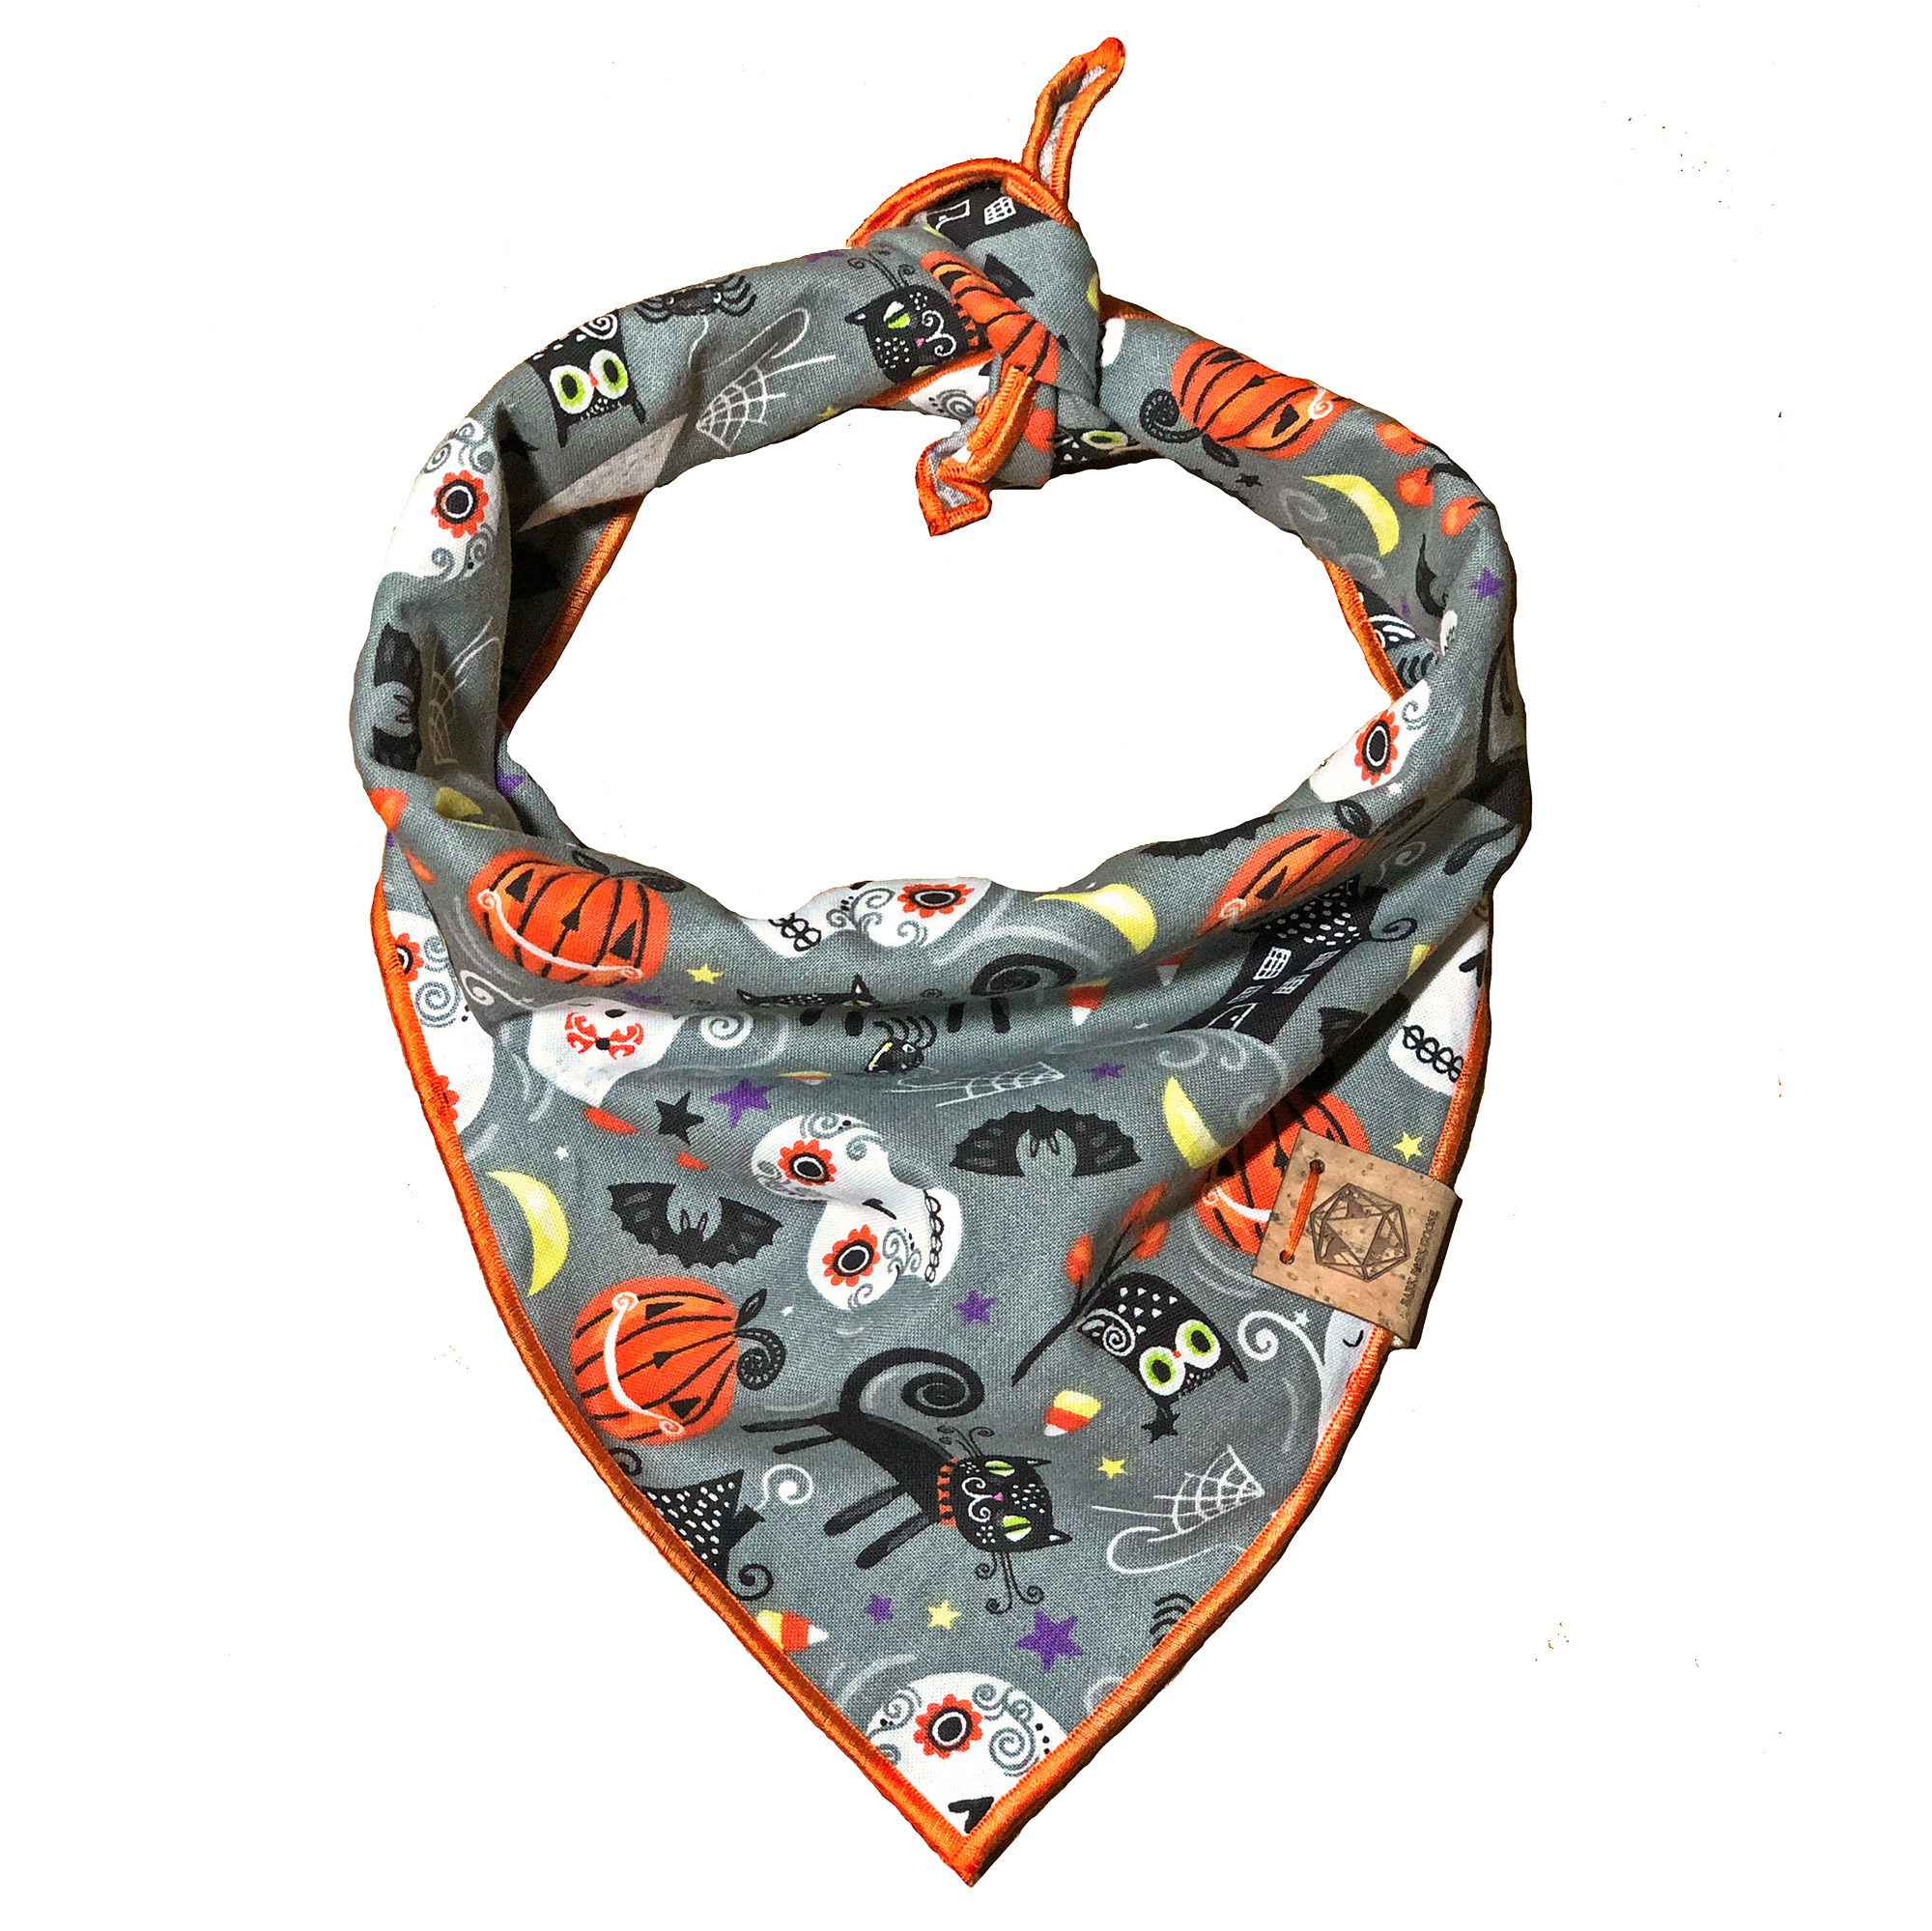 multi-colored-halloween-dog-bandana-with-ornage-pumpkins-skulls-bats-cats-and-more